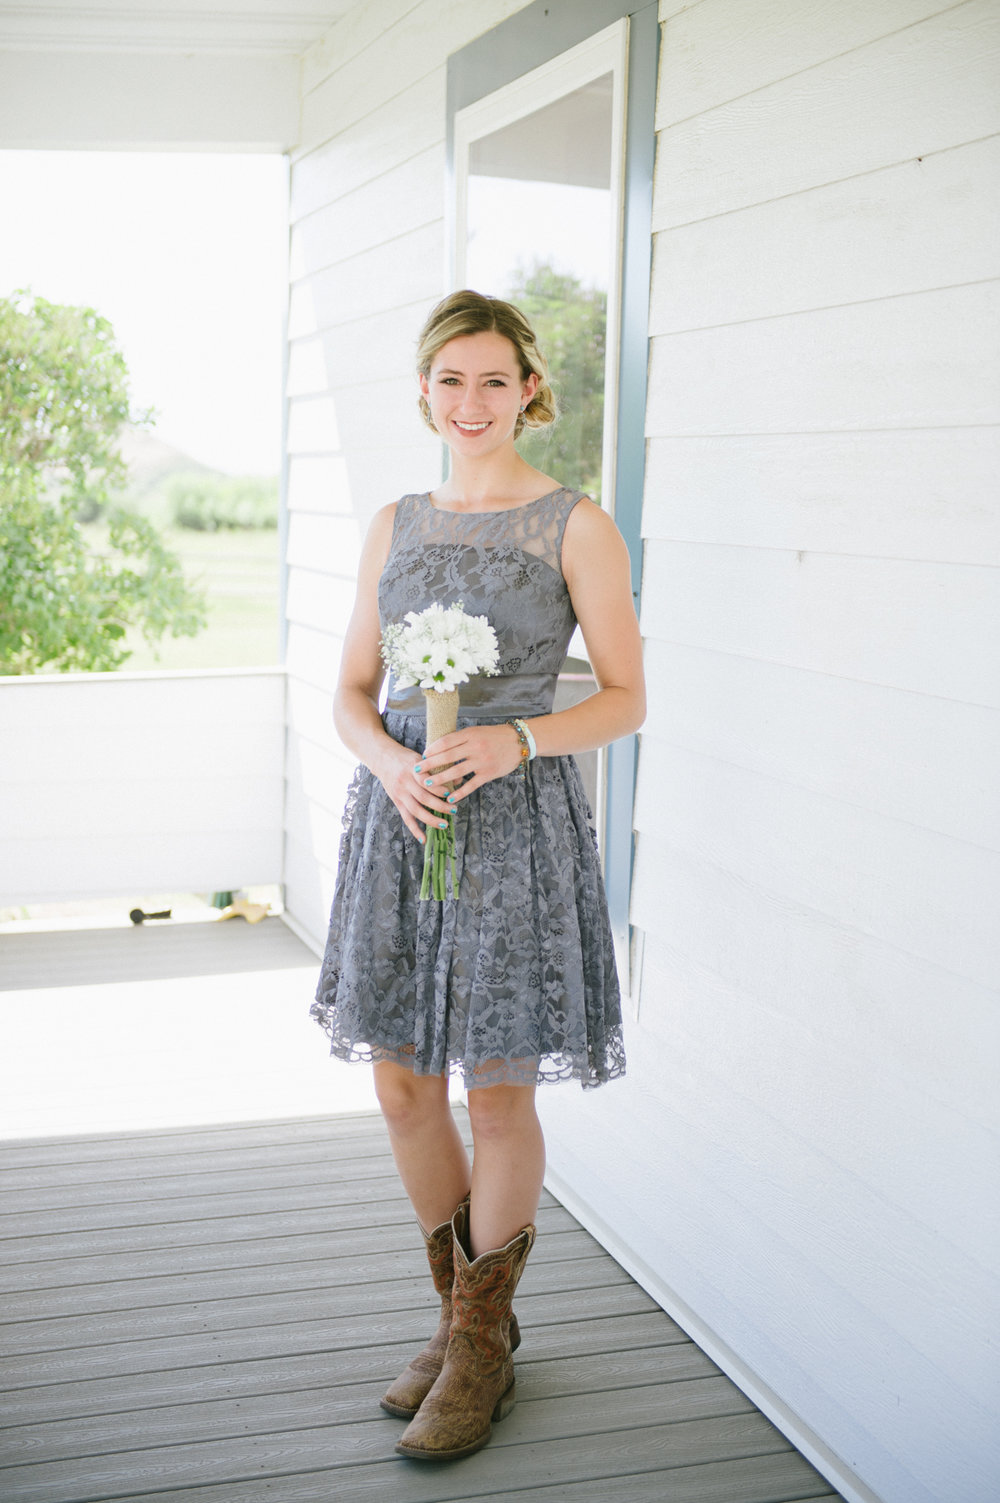 Erica Lind + Jeff Heim Wedding_Rustic Wedding_Montana Wedding_Kelsey Lane Photography-4199.jpg